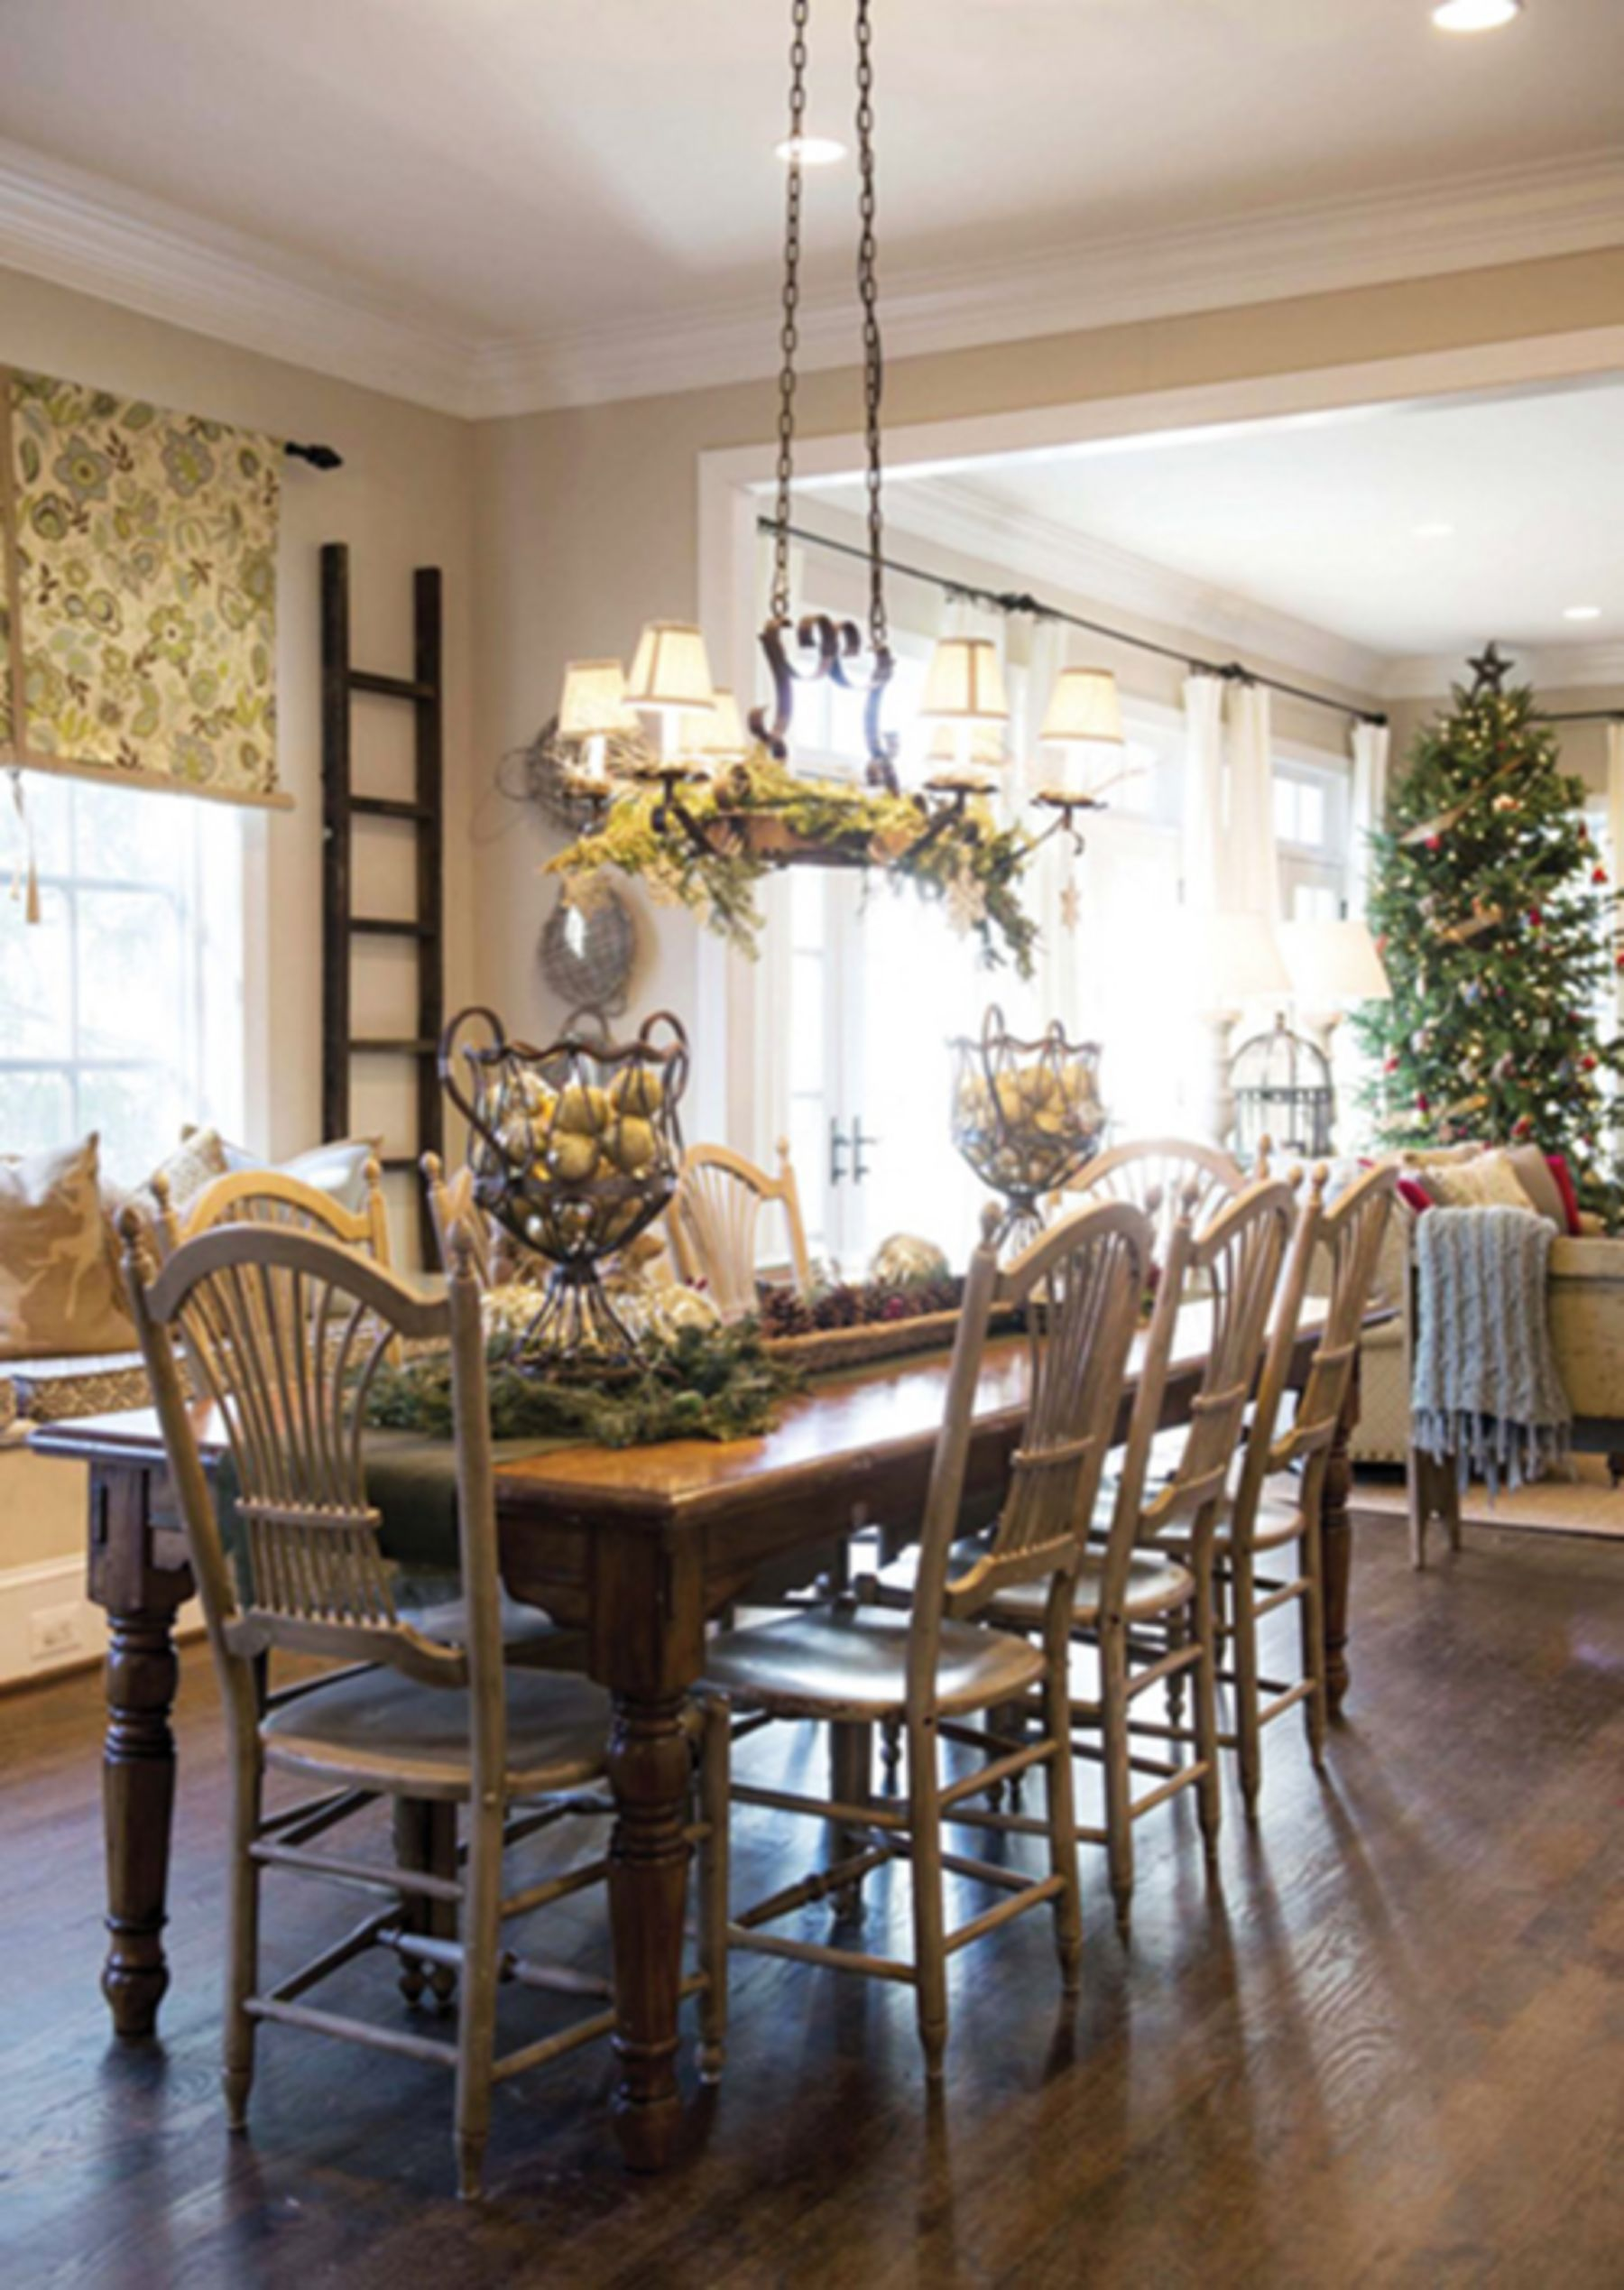 Romantic Dining Room: 20 Romantic Dining Room To Make Your Family Happy